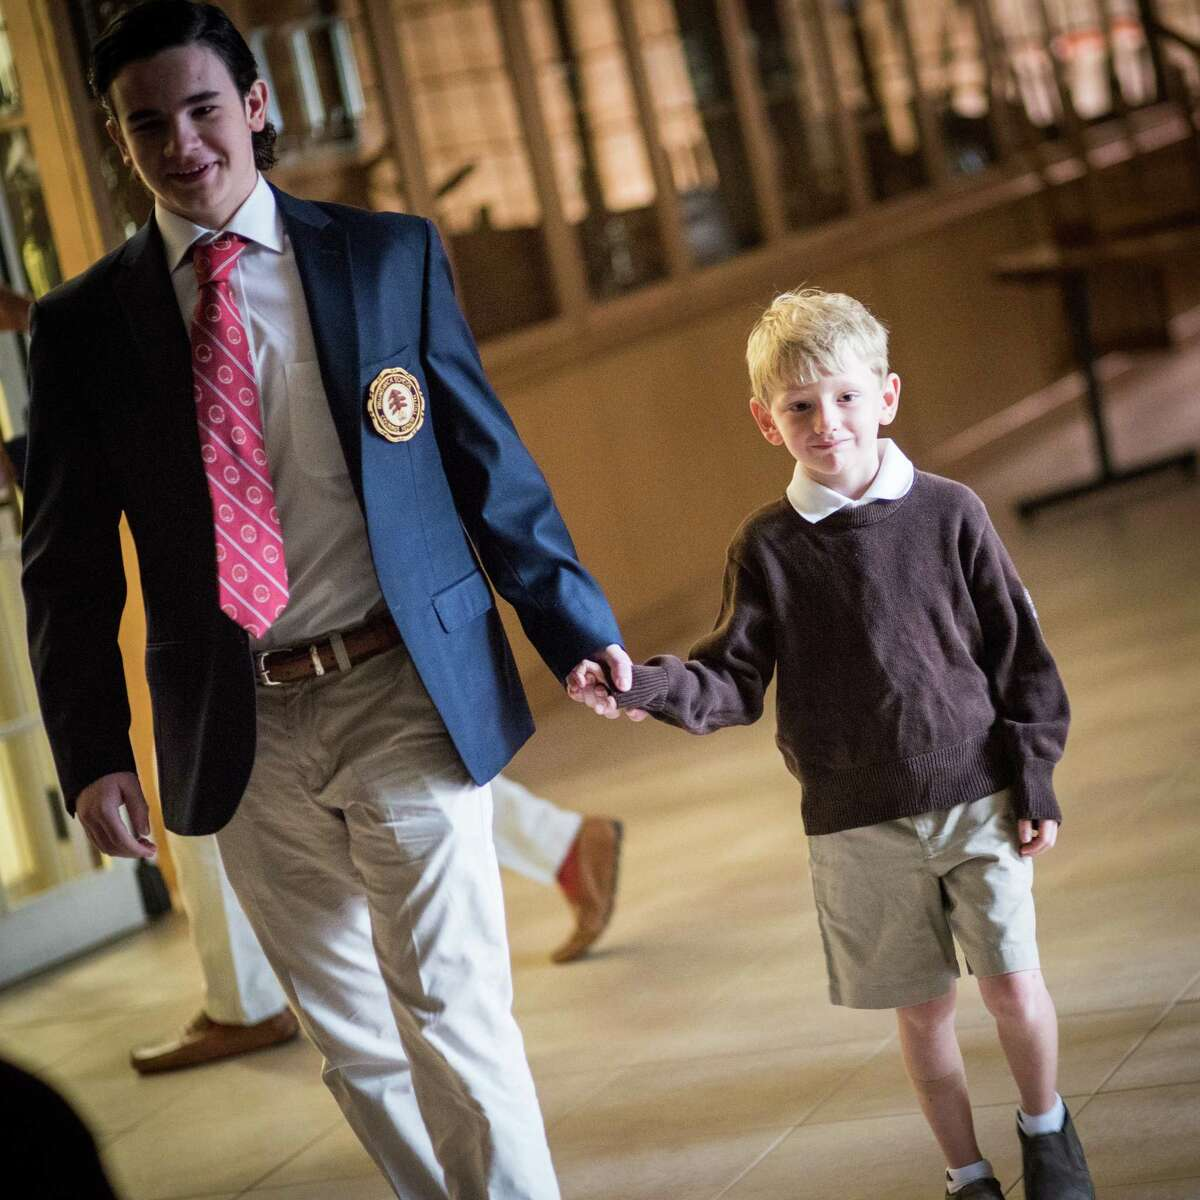 Senior Jack Stefanou and first-grader Gavin Kirsch prepare process into the beginning of opening exercises for Brunswick's 114th school year.